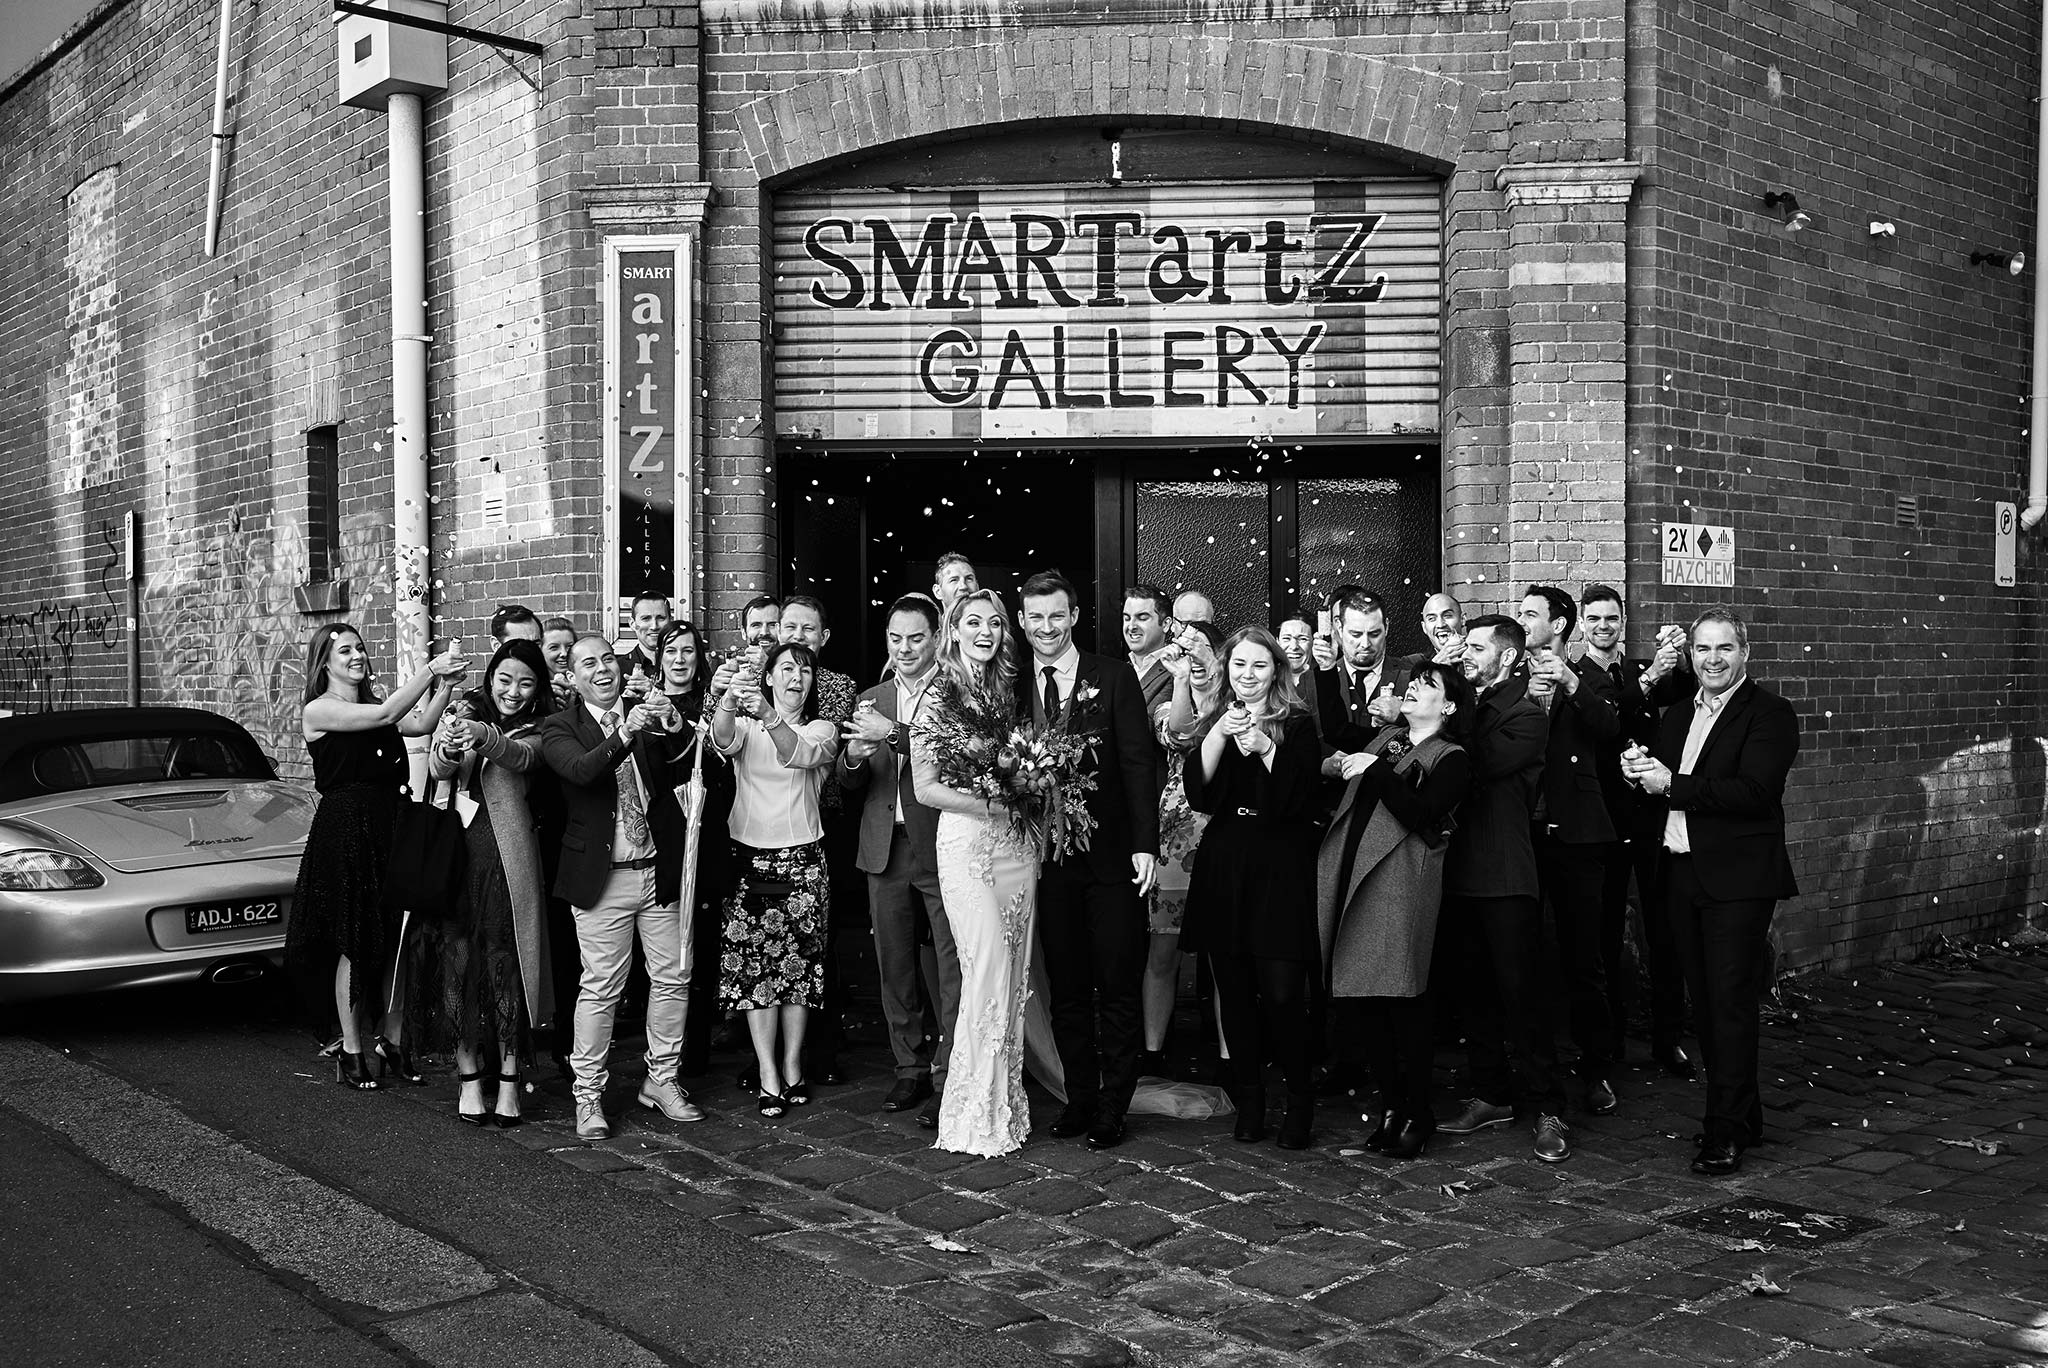 Melbourne-Wedding-Photographer-smartartz-gallery-ceremony-group